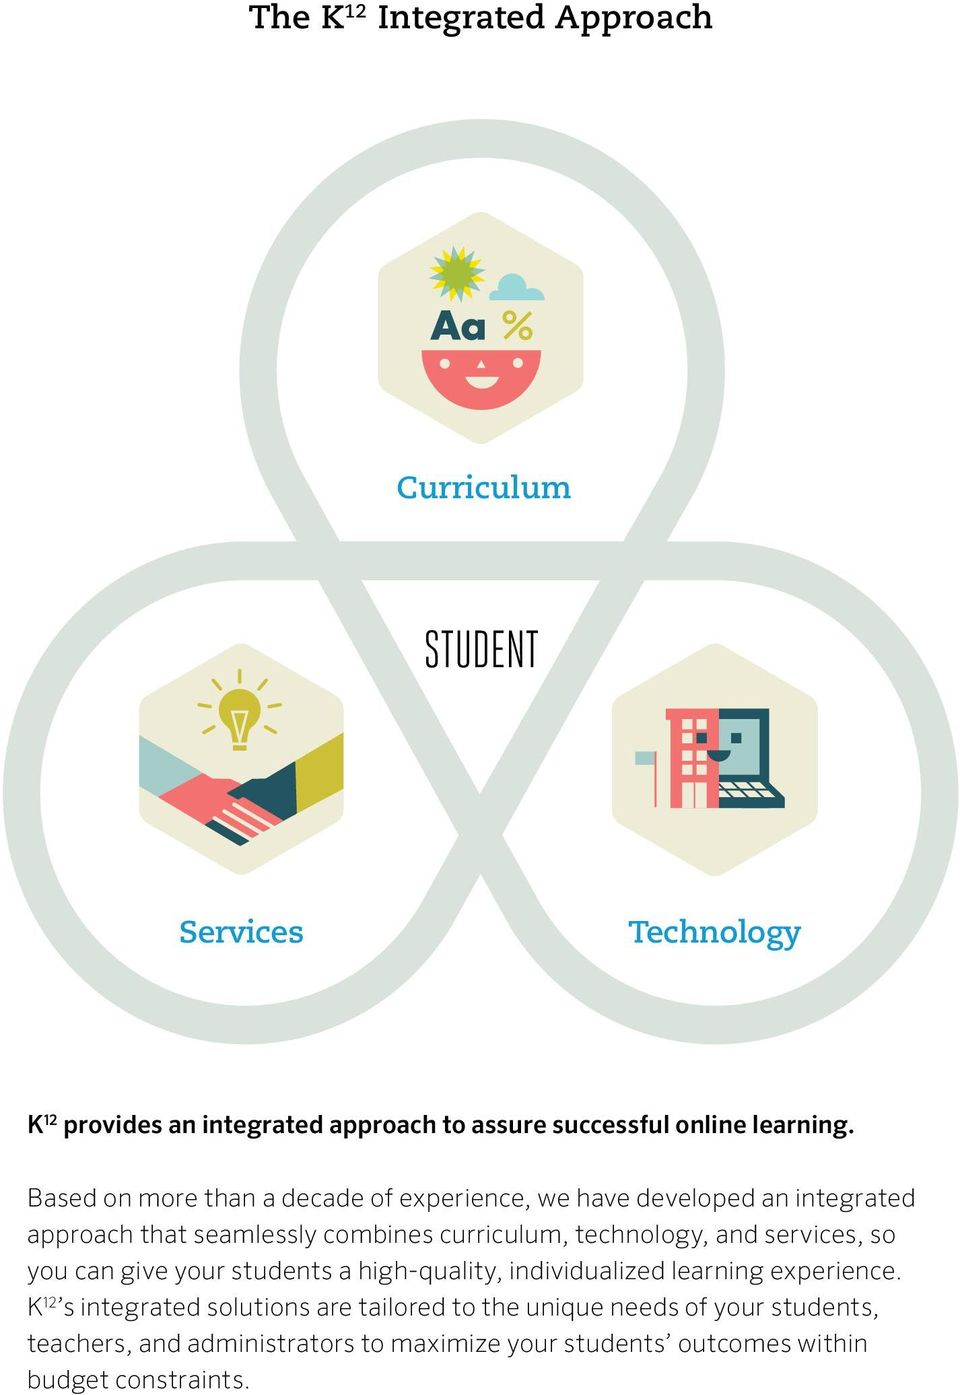 Based on more than a decade of experience, we have developed an integrated approach that seamlessly combines curriculum, technology,